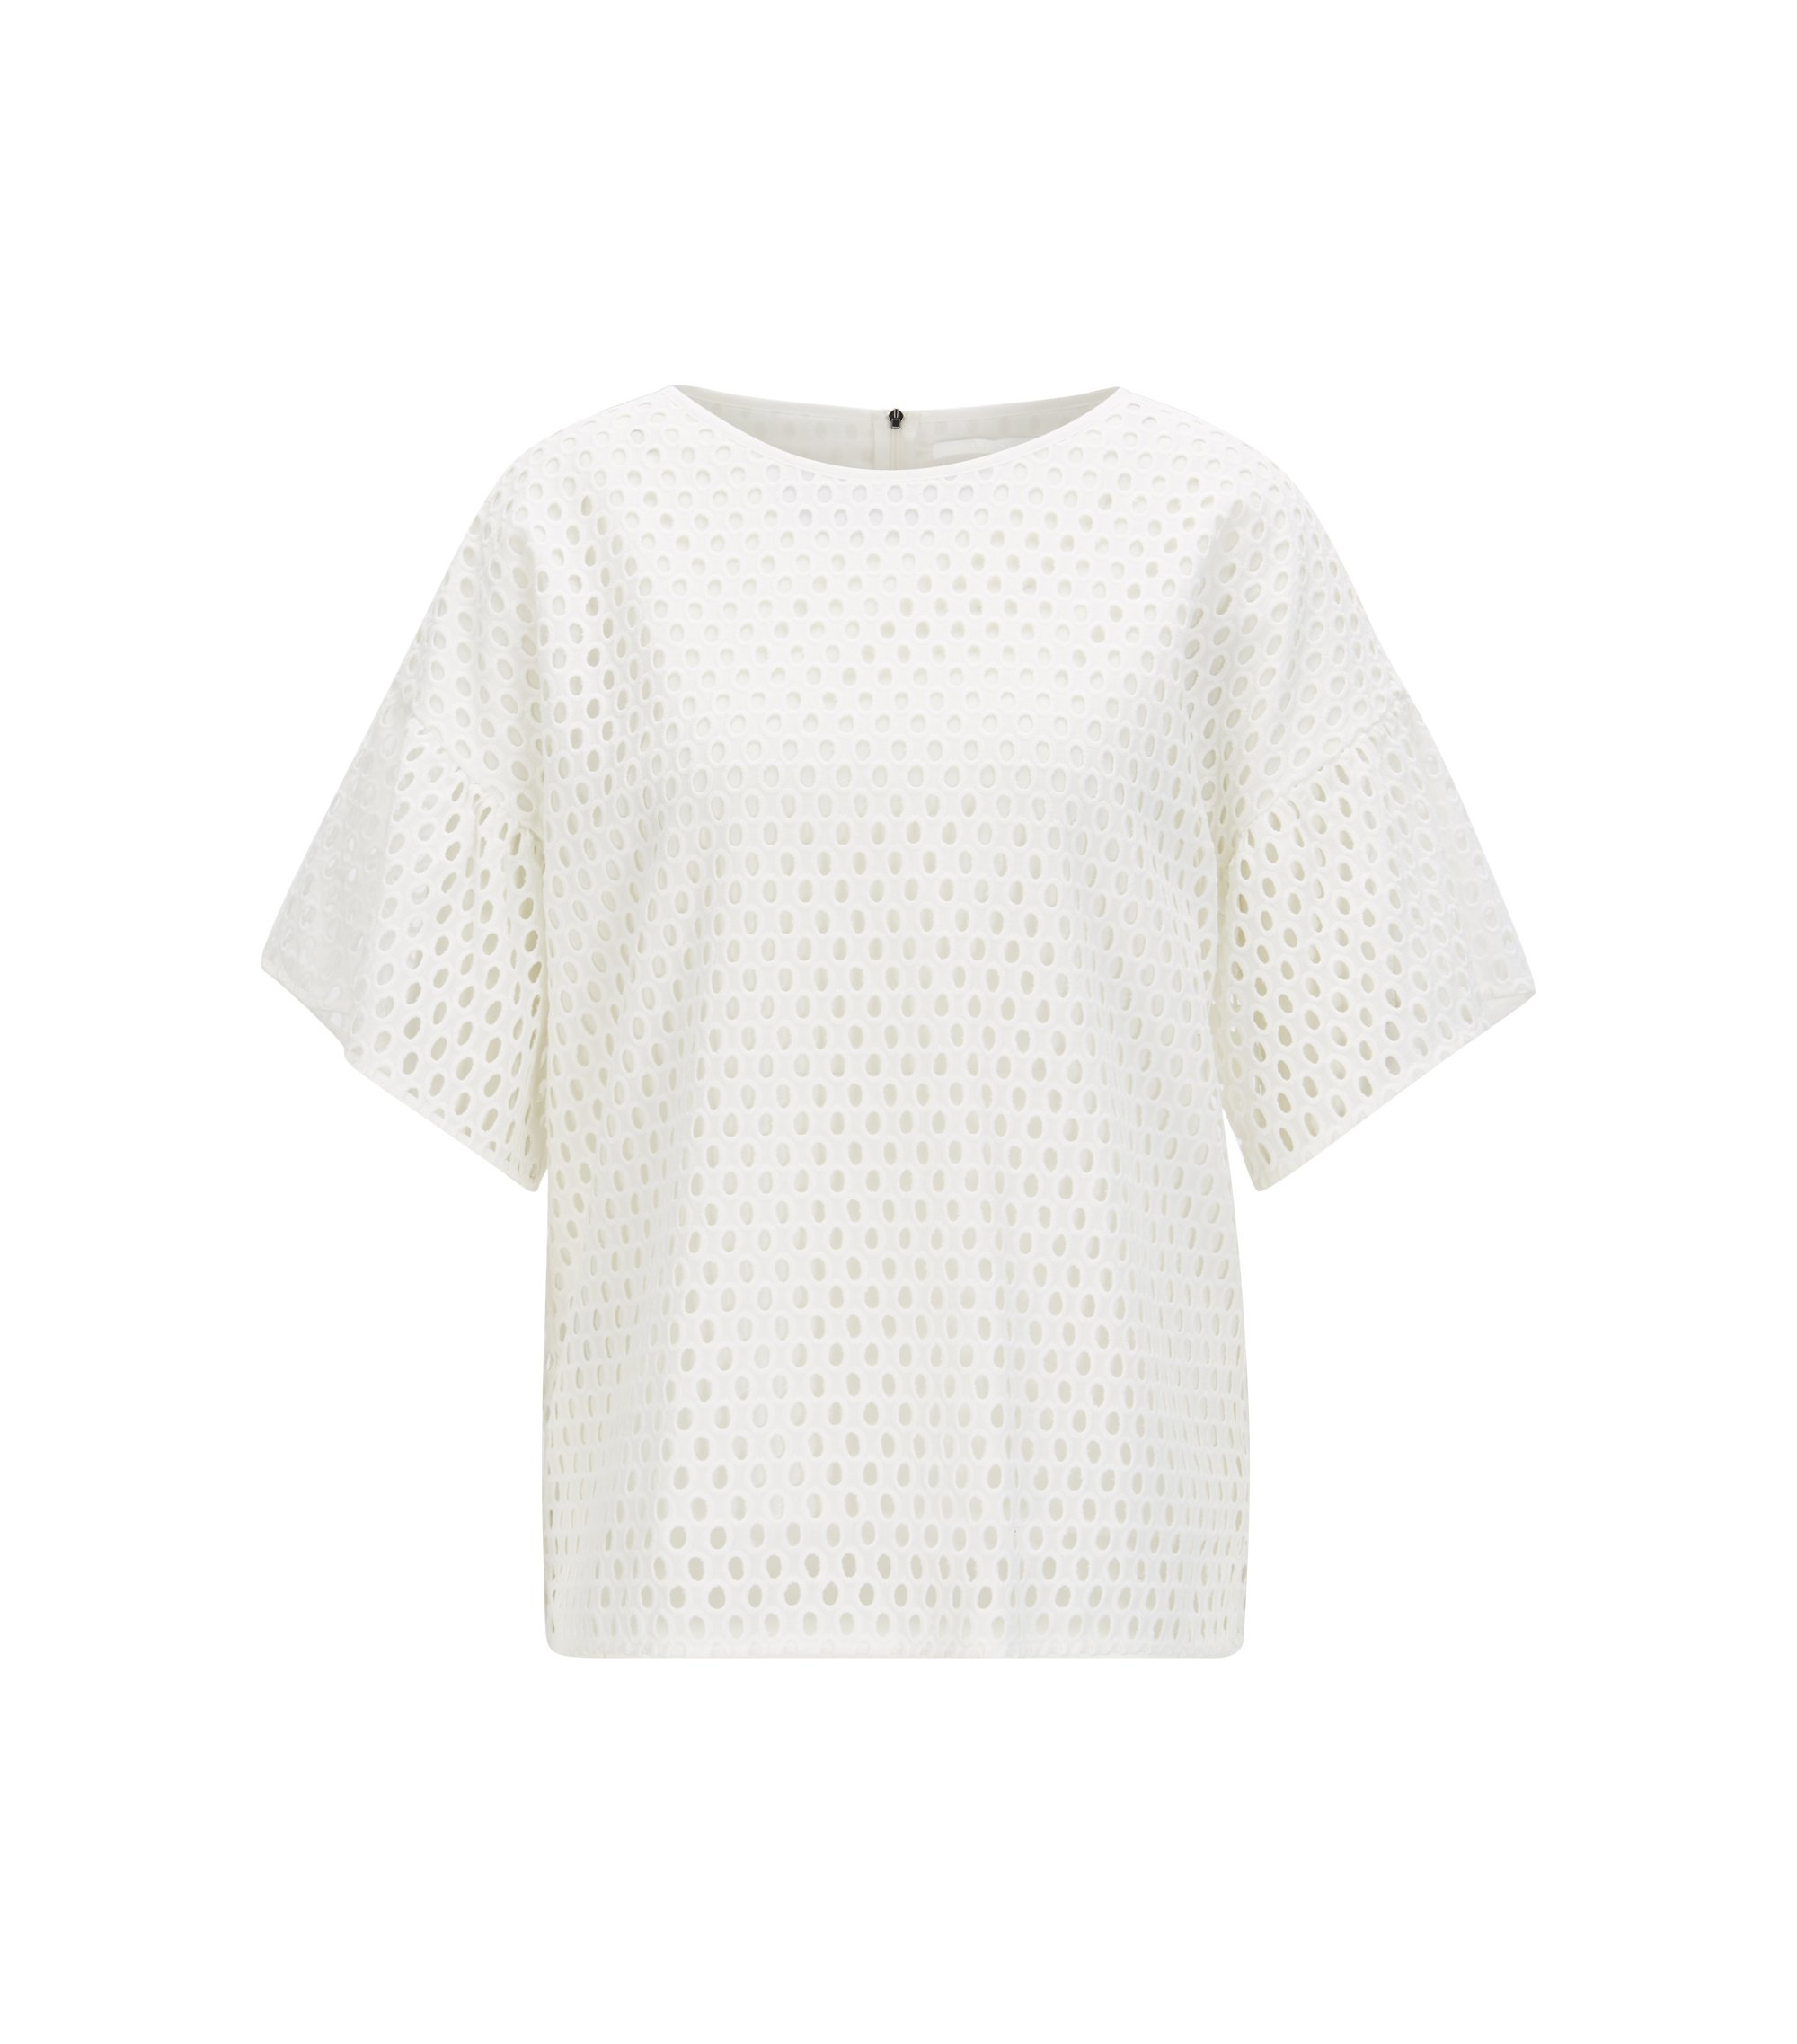 Dropped-shoulder top in cotton broderie anglaise, Natural